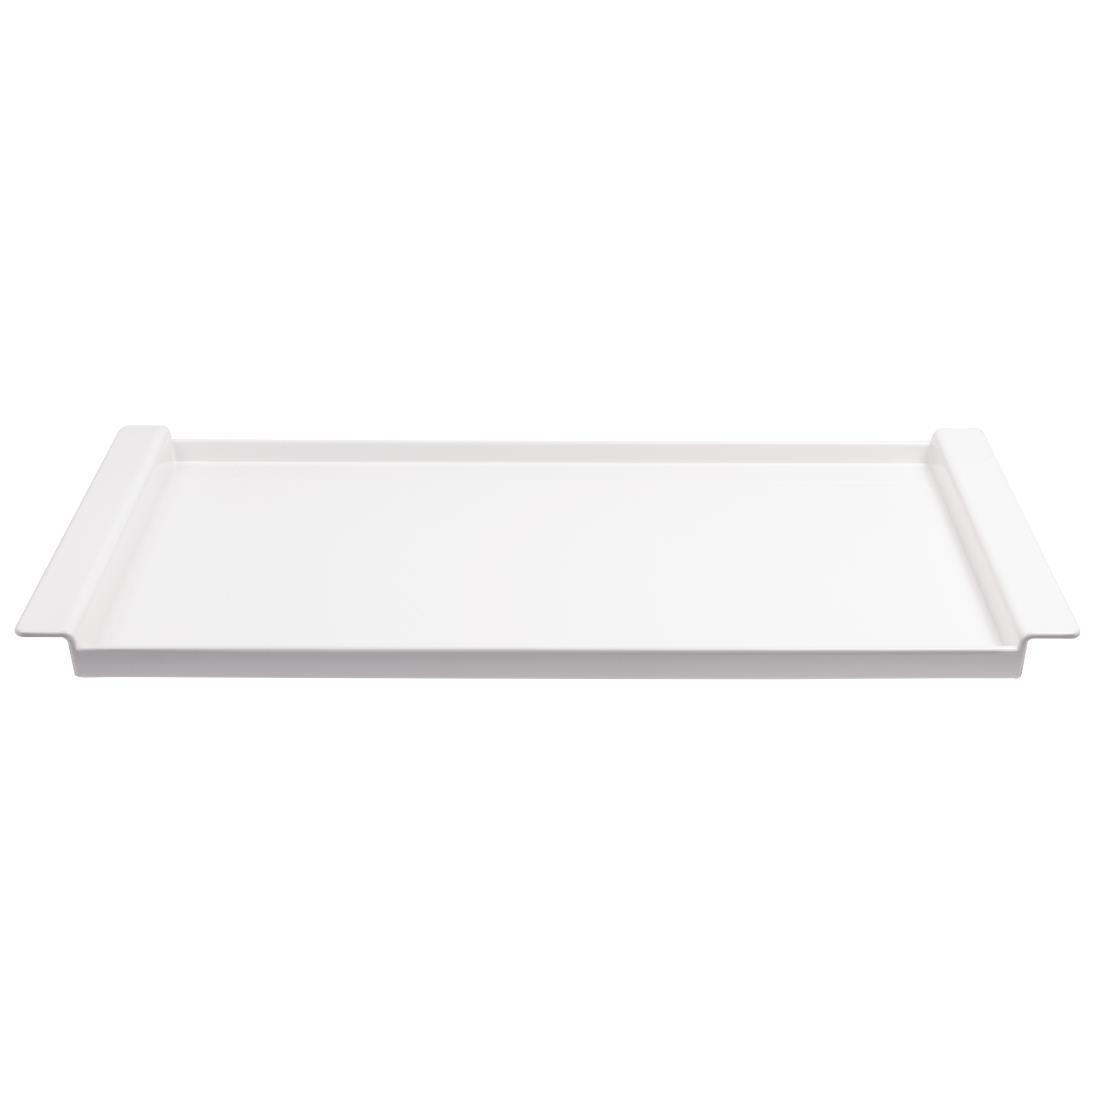 APS Breadstation Tray - Each - GH393